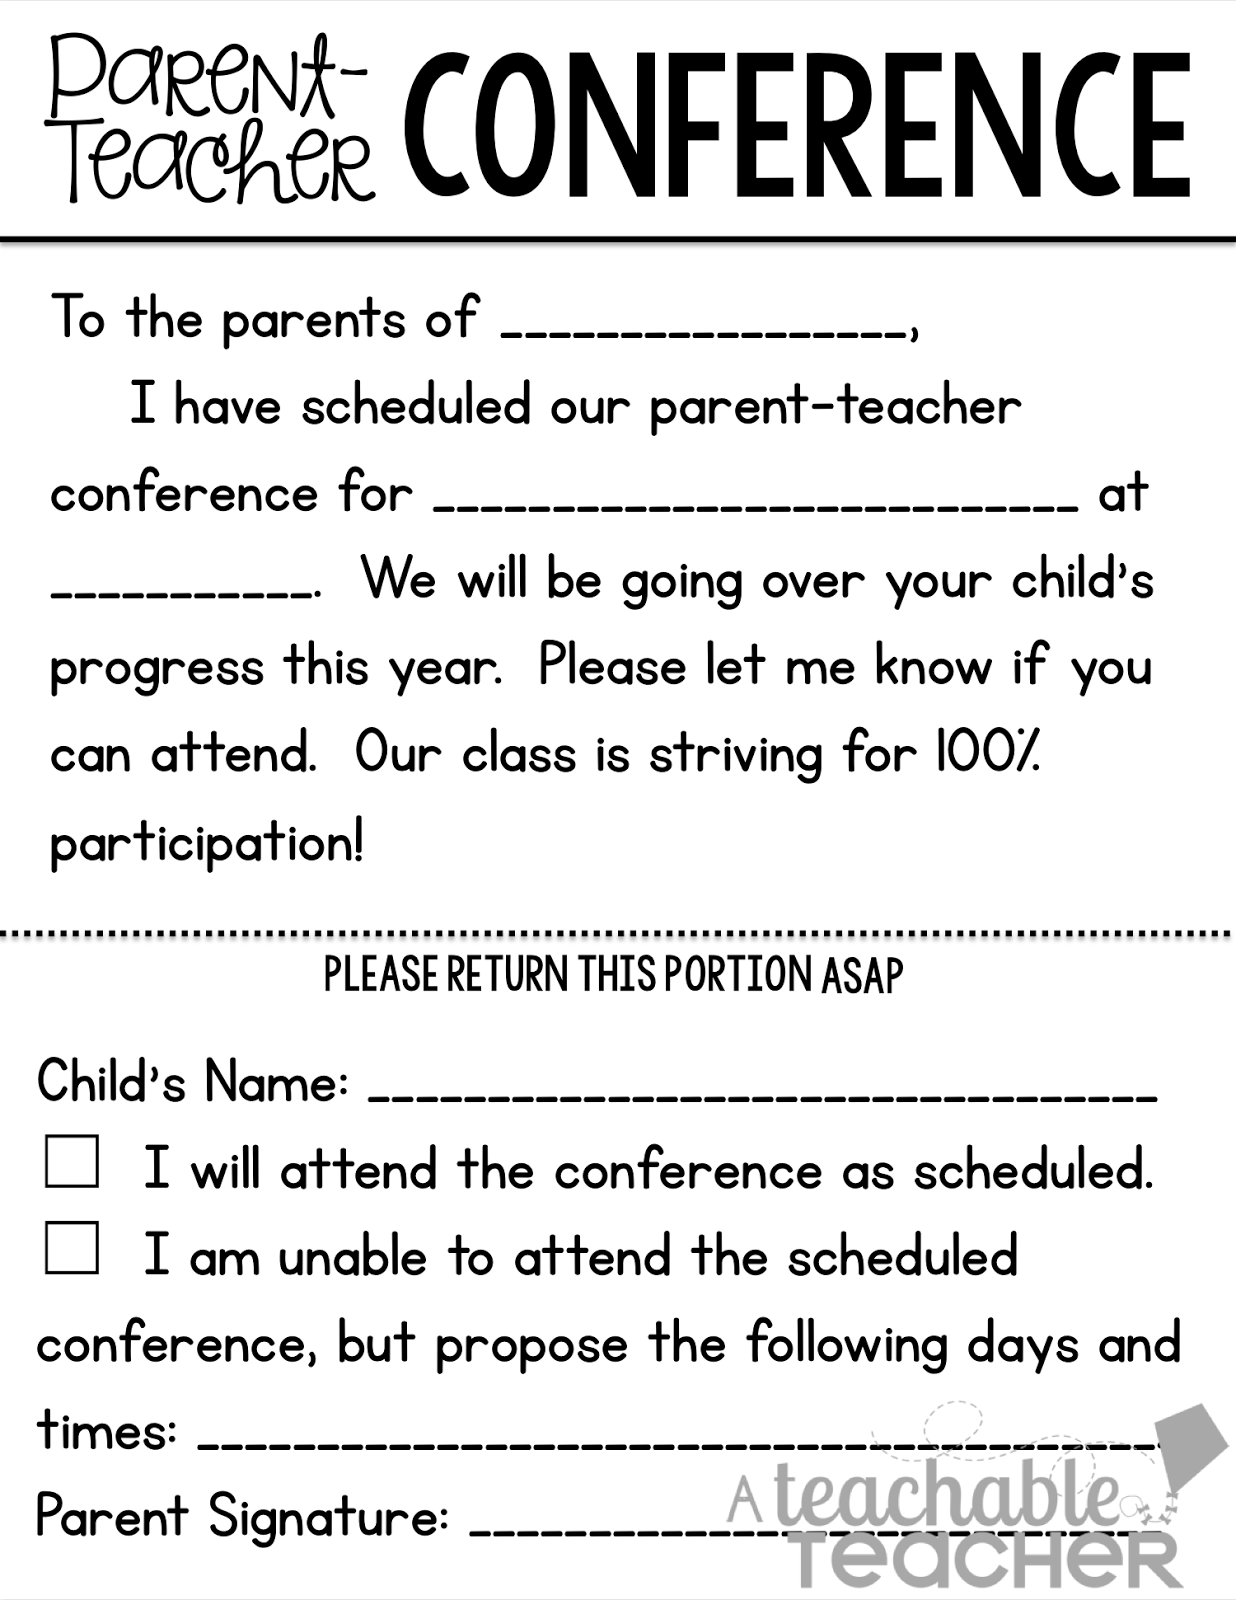 Teachable Teacher: Parent-Teacher Conference Tips and Freebies Linky ...